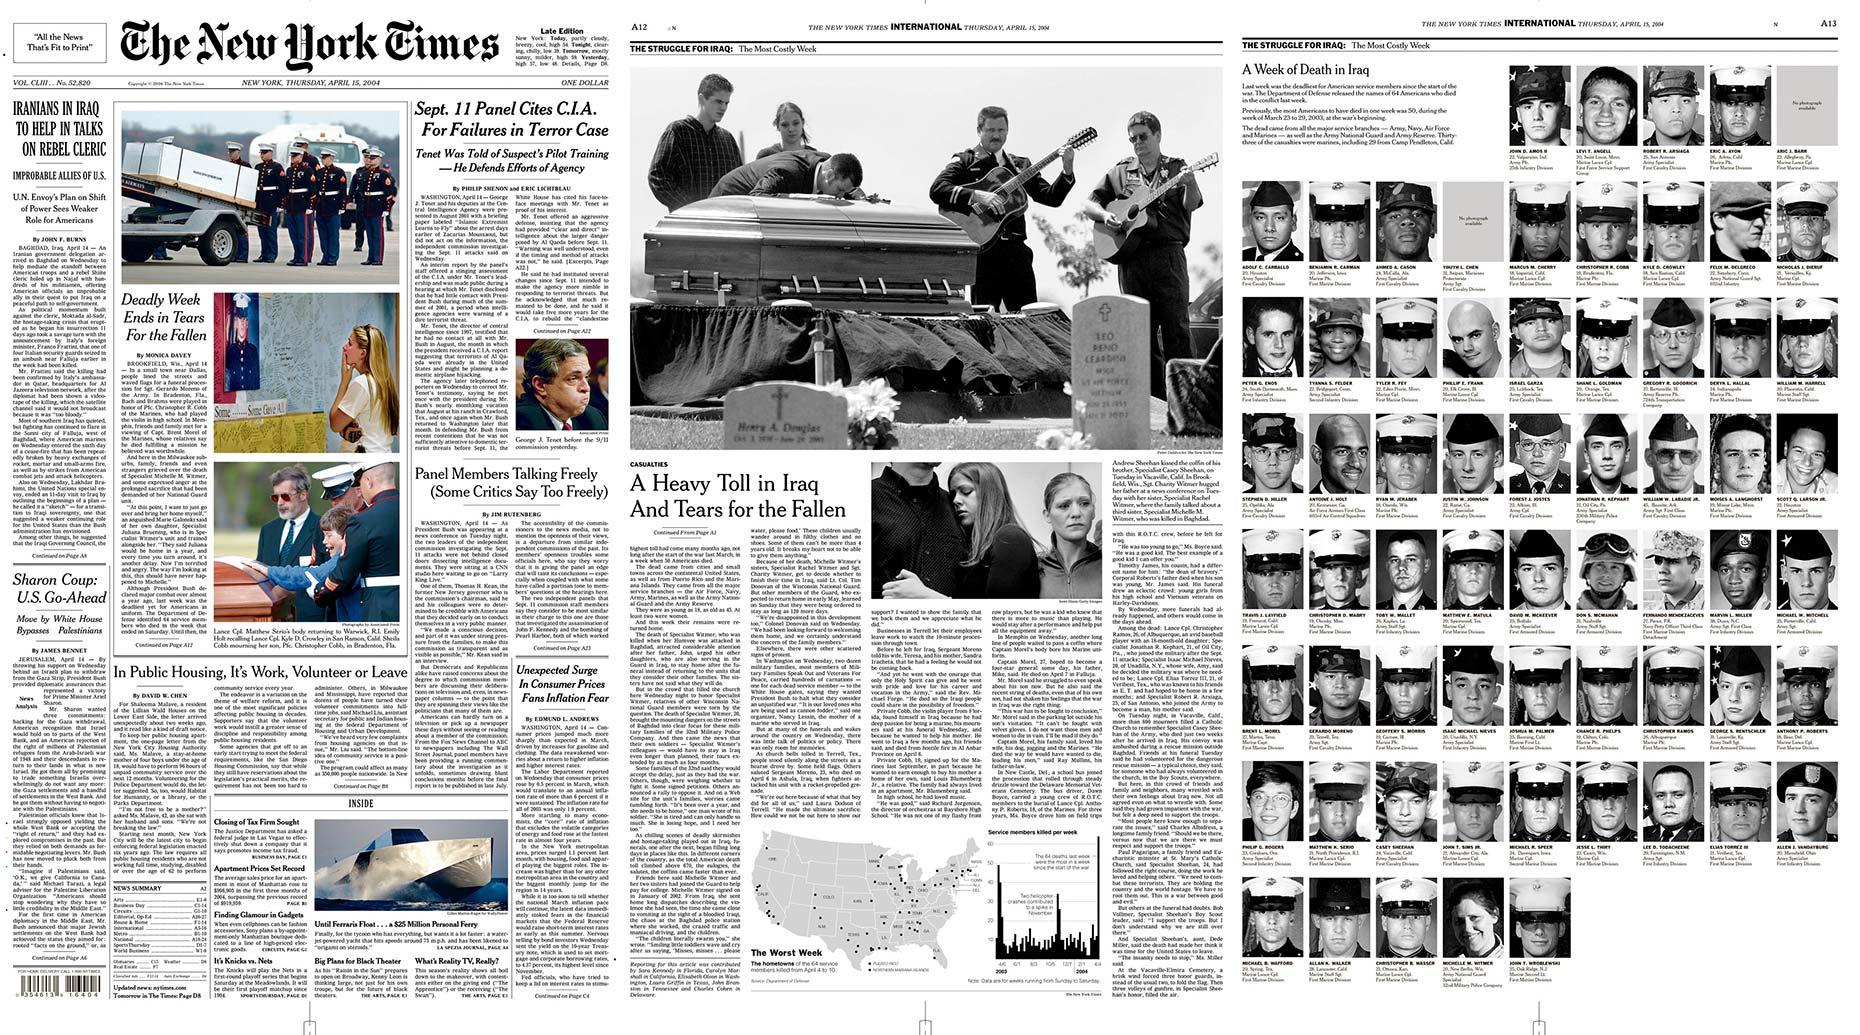 nytfront-03